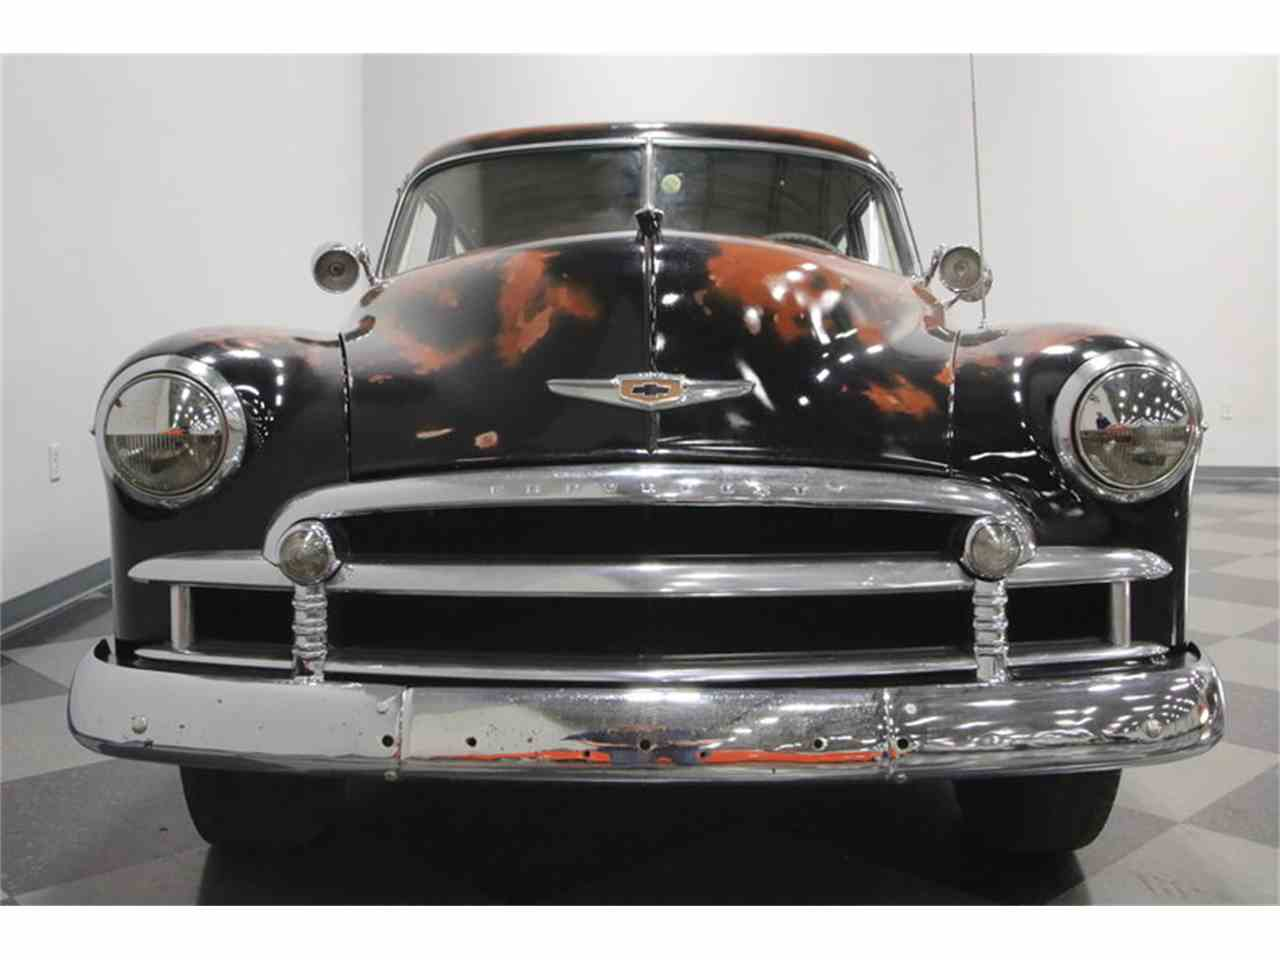 Large Picture of Classic 1950 Chevrolet Styleline Deluxe located in Lavergne Tennessee Offered by Streetside Classics - Nashville - MZSM